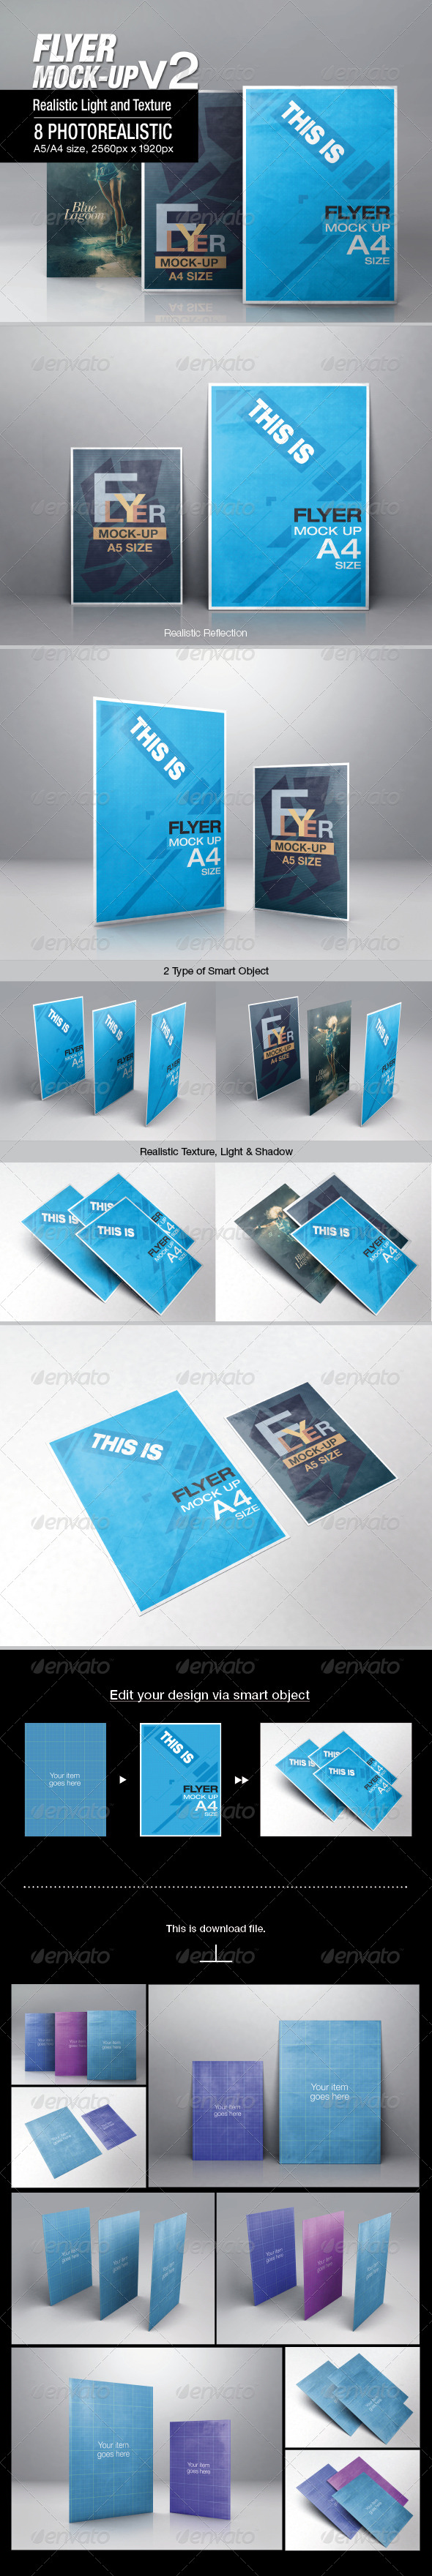 GraphicRiver Flyer Mock-up v2 6649482